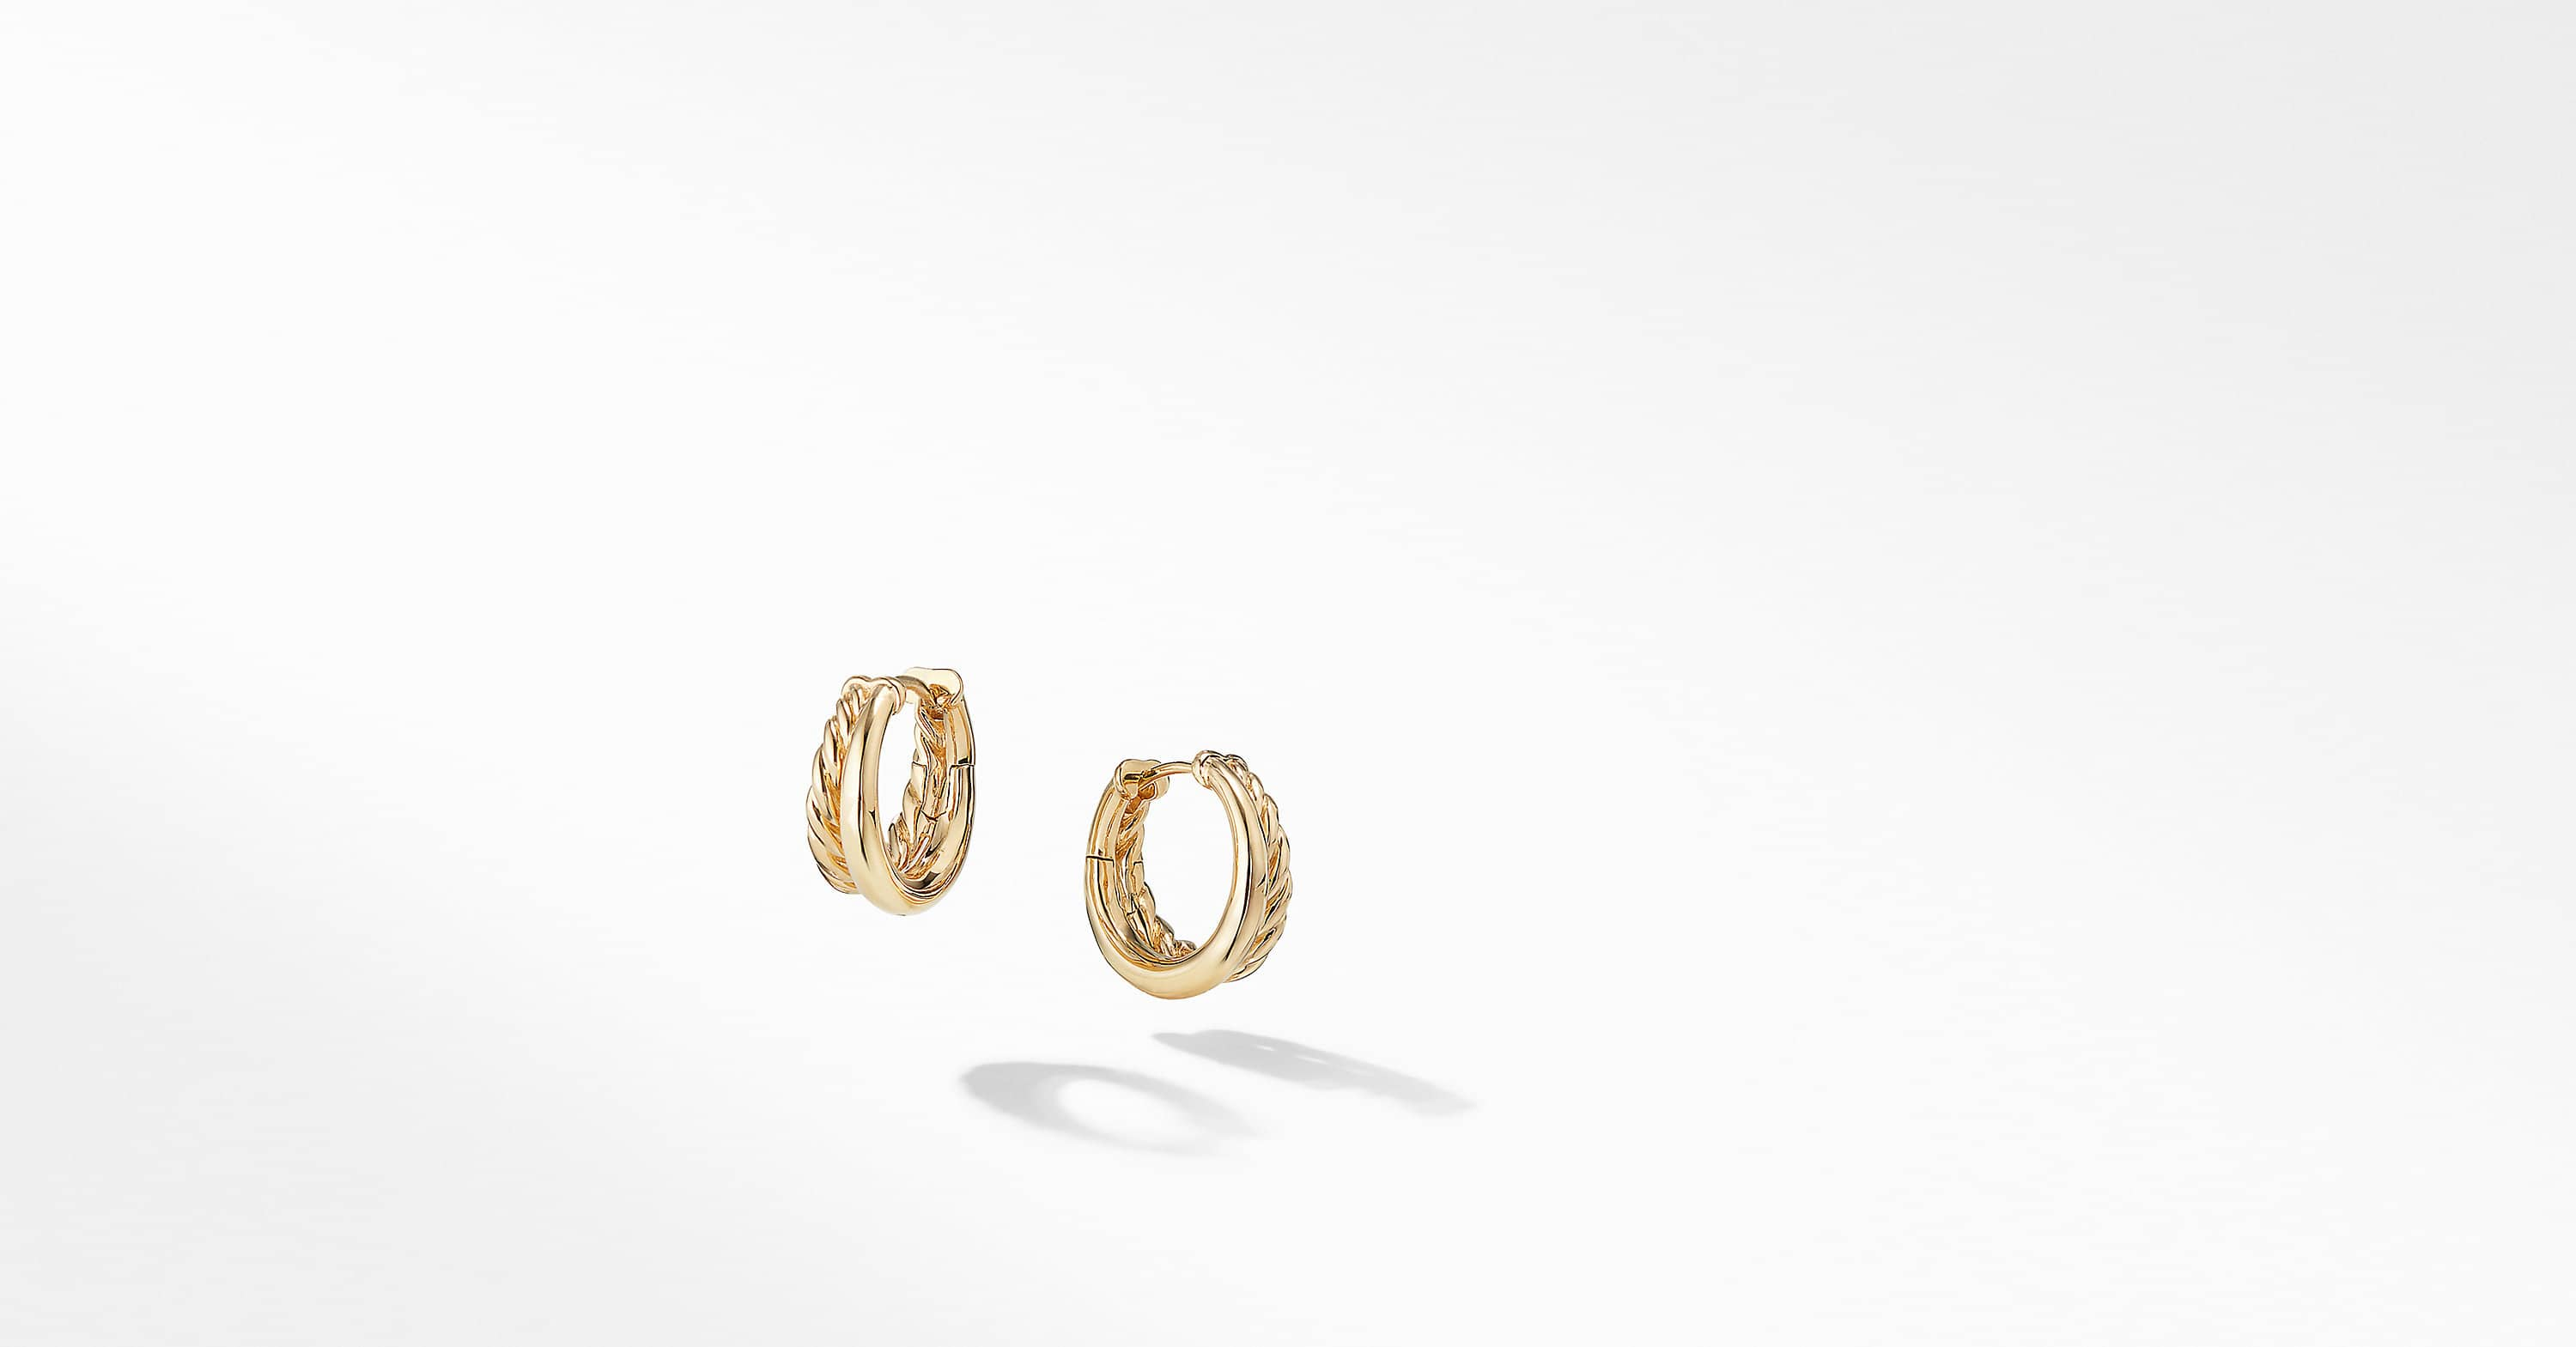 Pure Form Hoop Earrings in 18K Gold